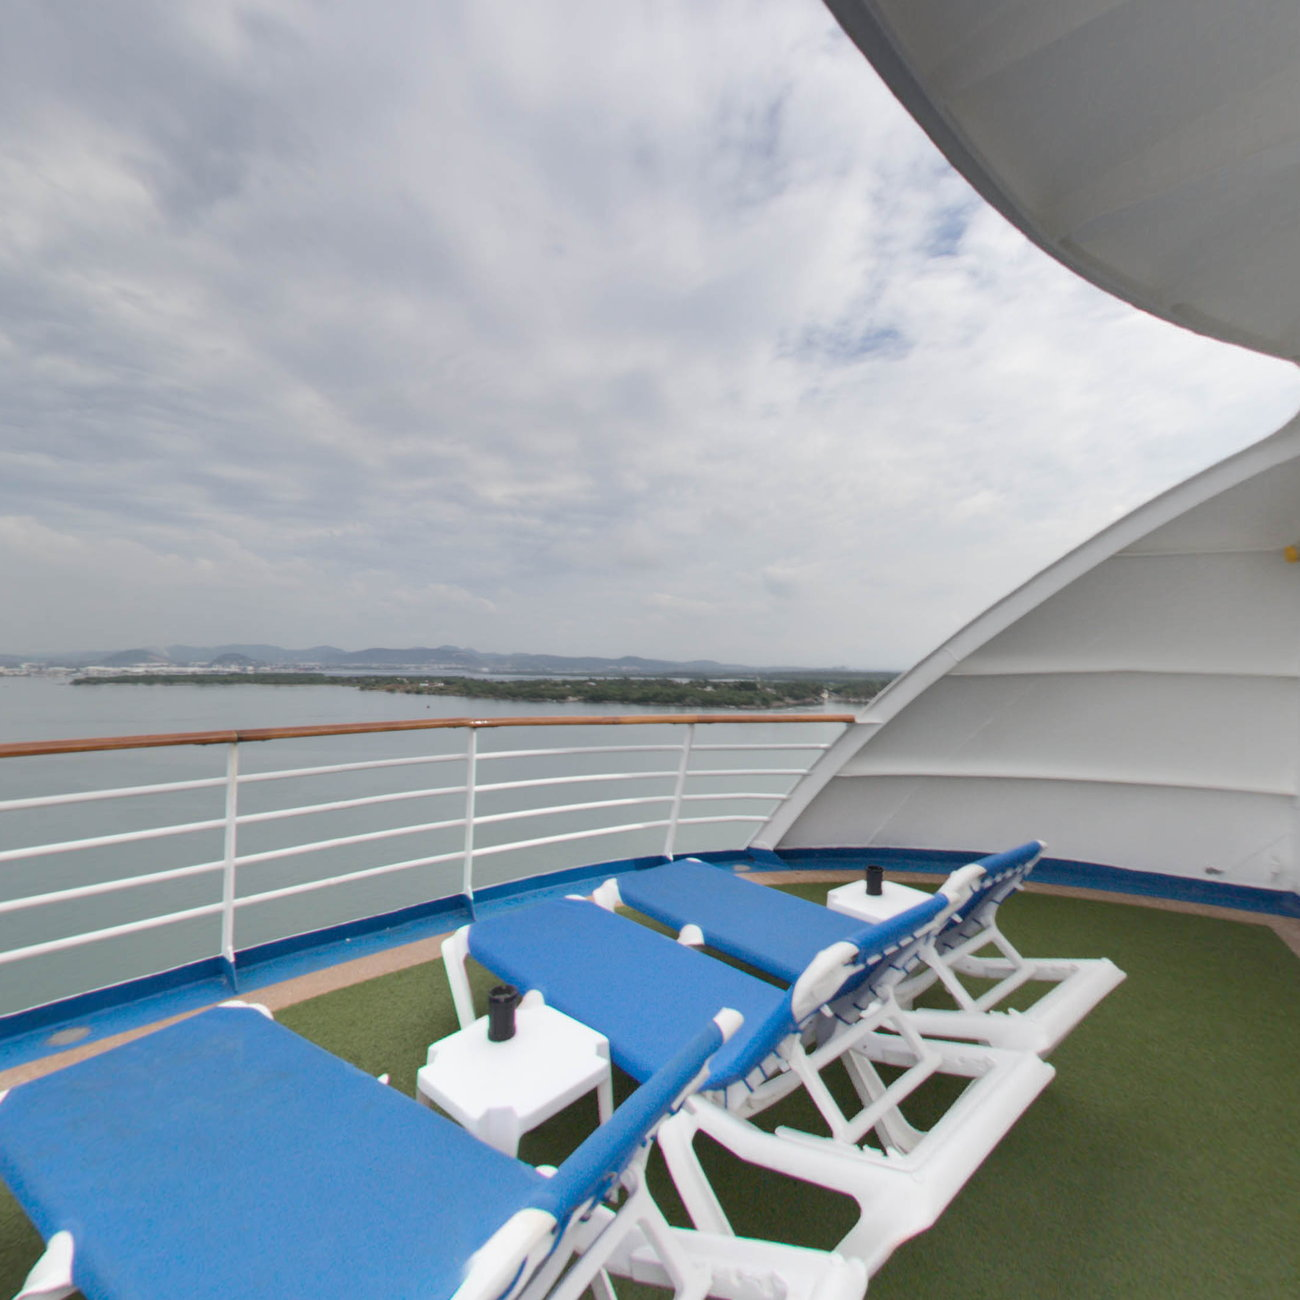 Panorama of The Sun Deck 16 on Crown Princess